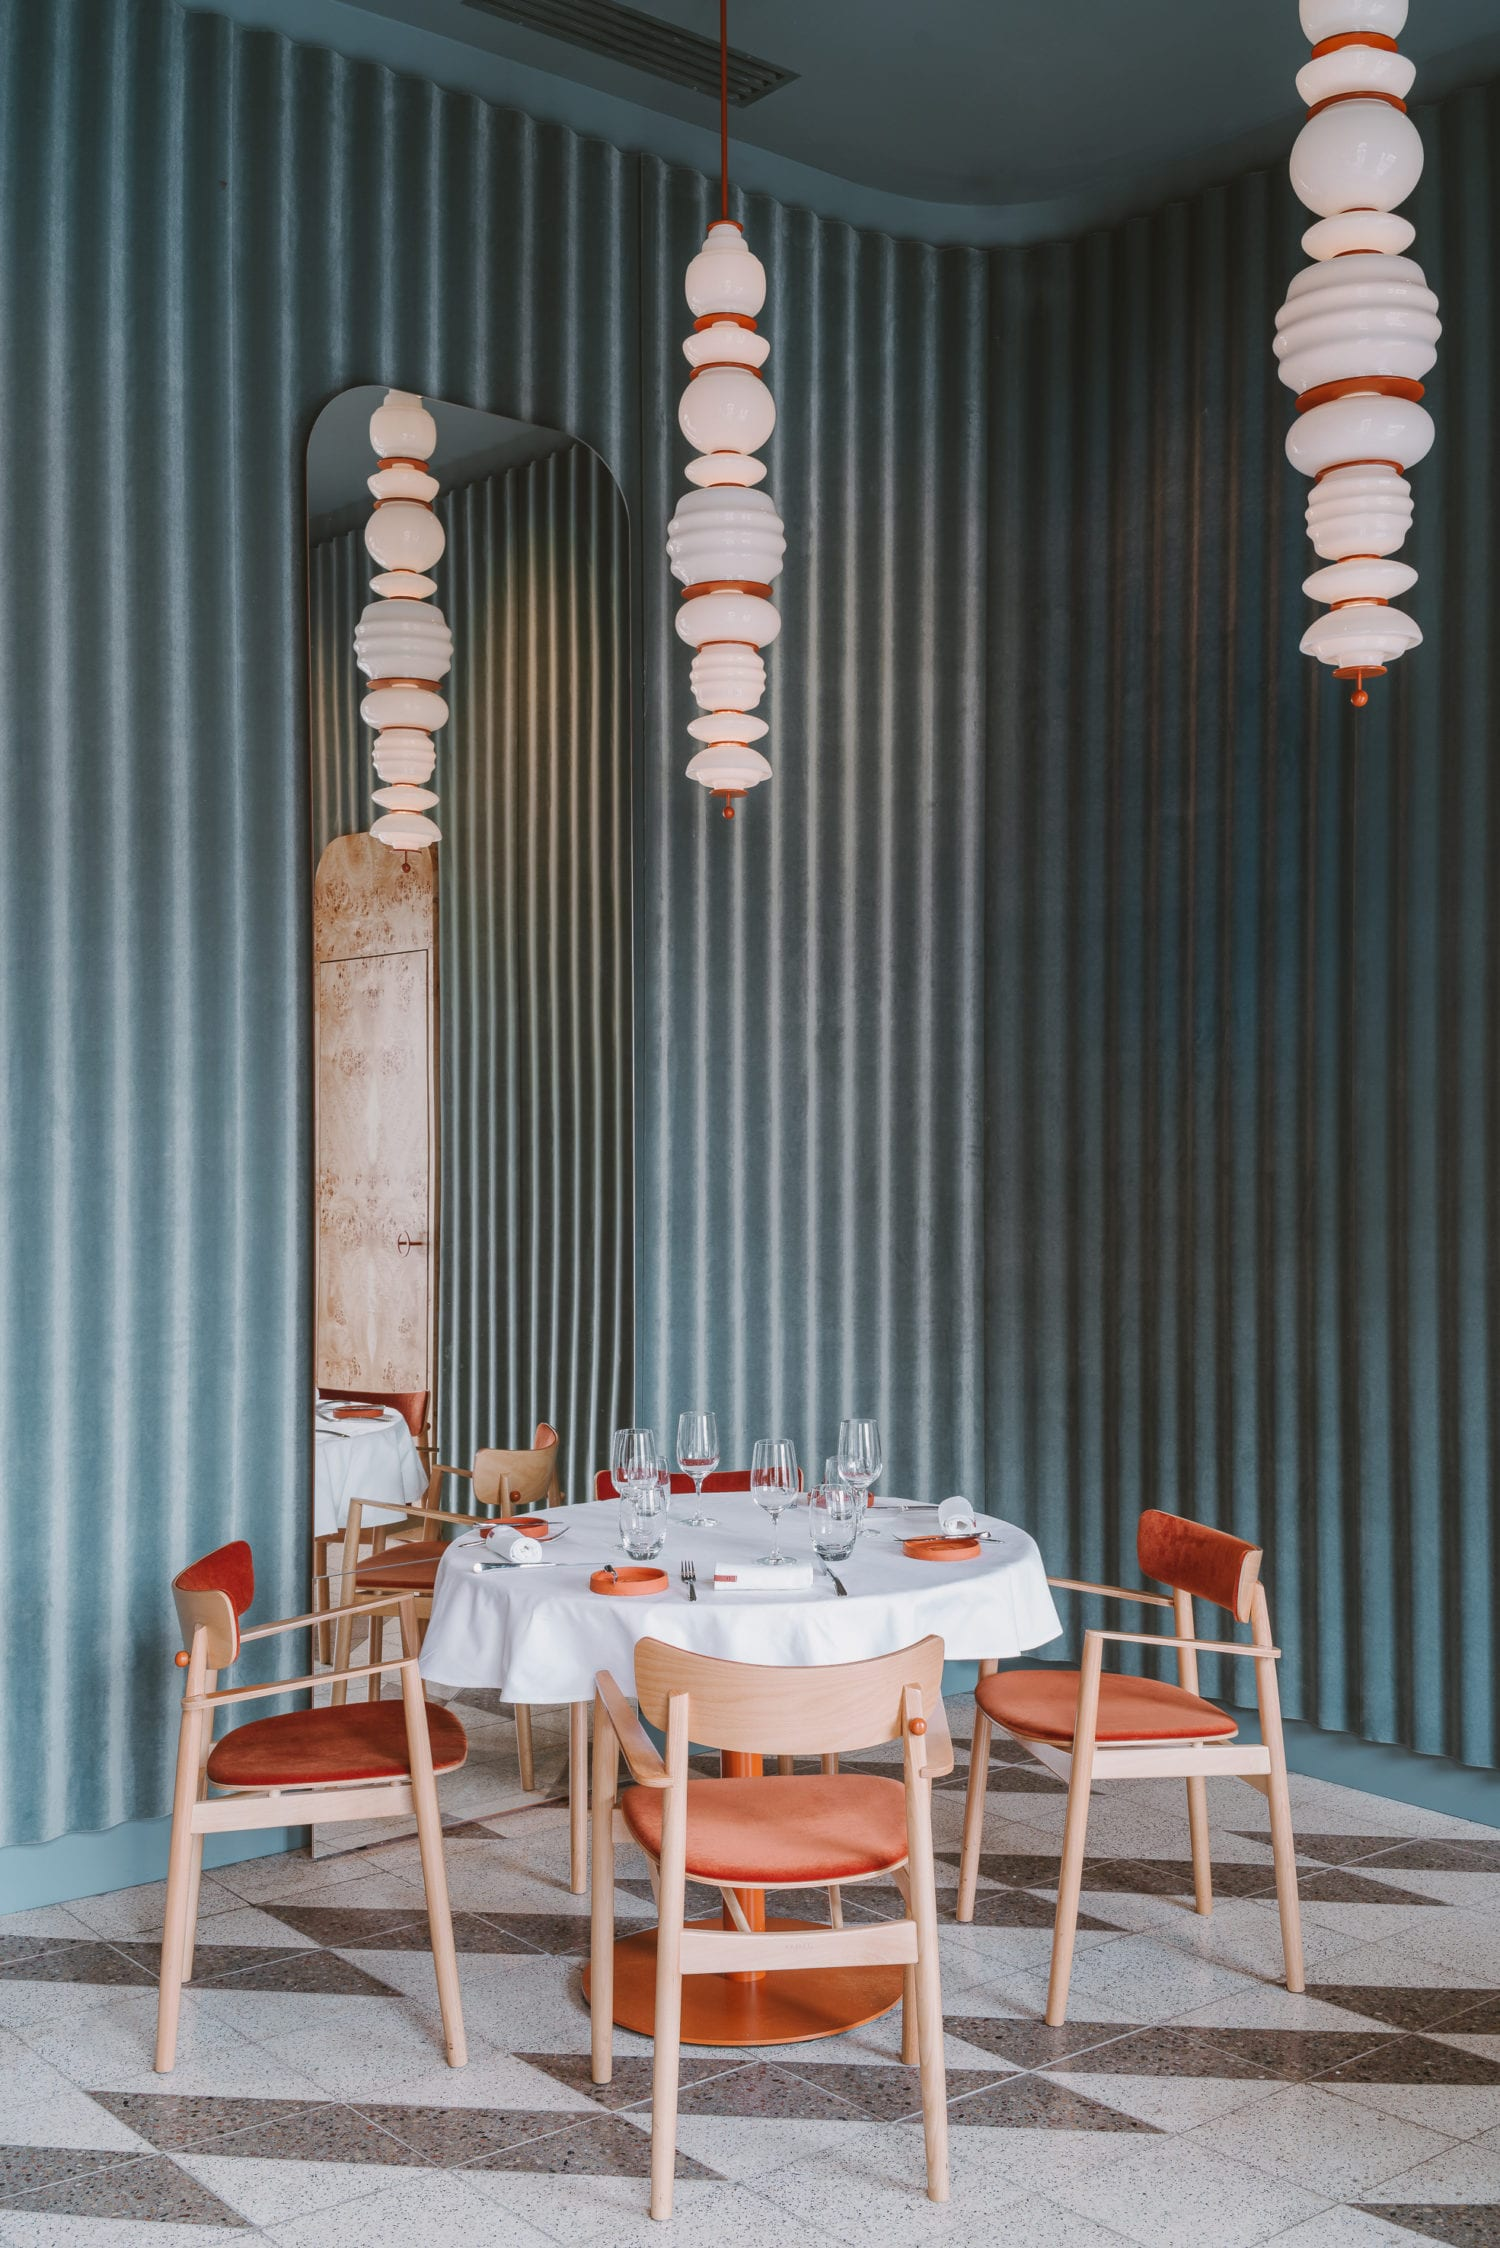 Opasly Tom Restaurant In Warsaw Poland By Buck Studio Yellowtrace 02